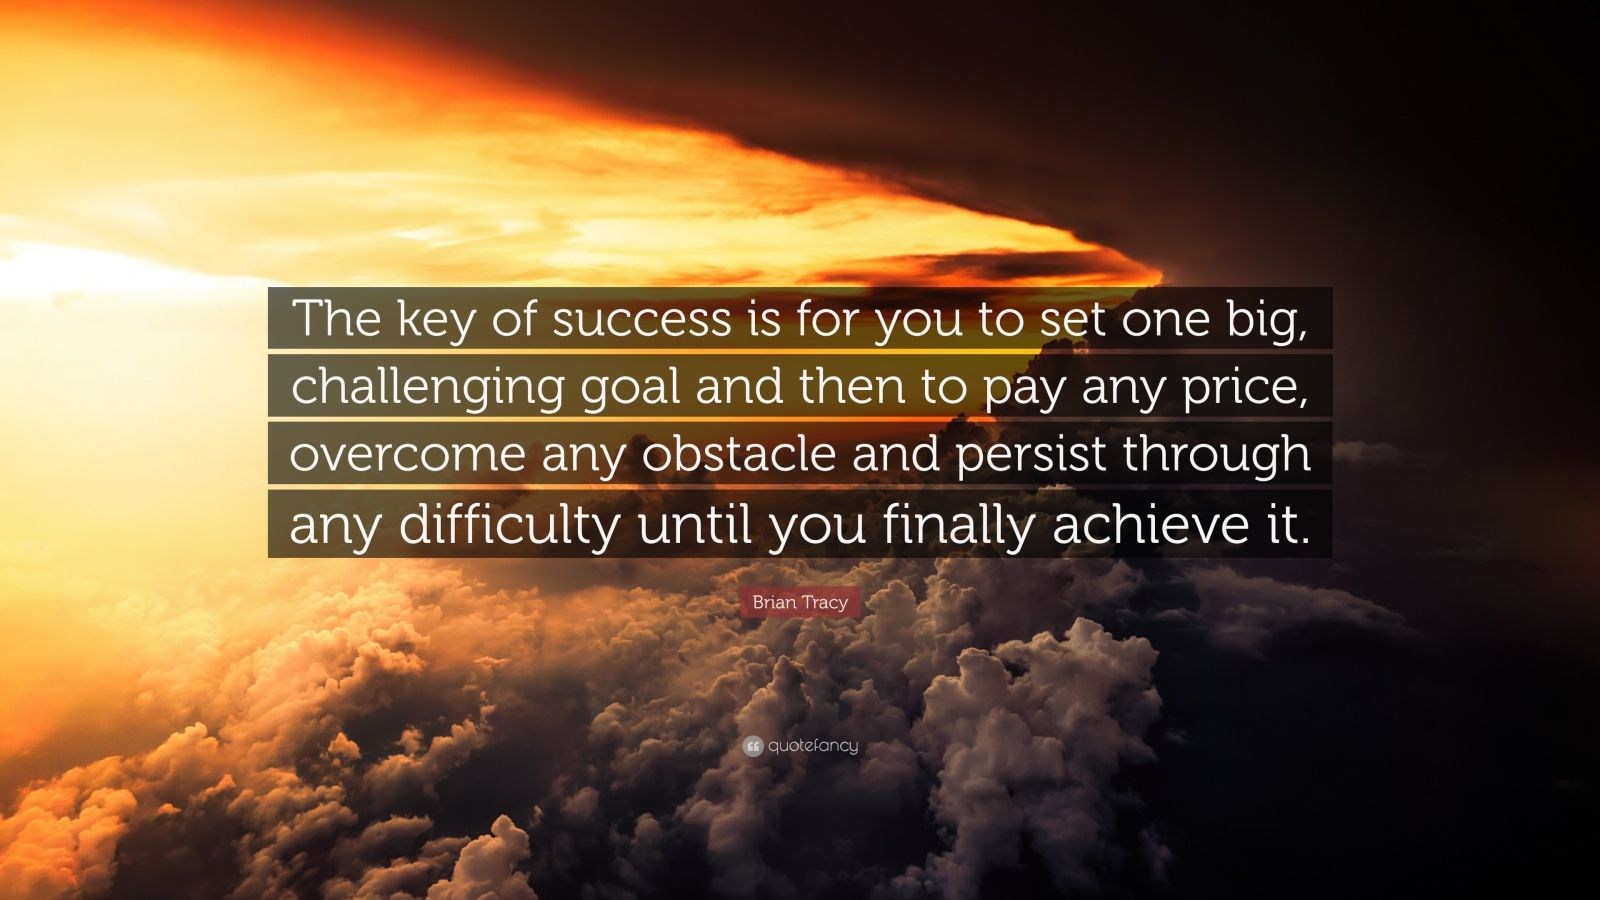 """Brian Tracy Quote: """"The key of success is for you to set one big, challenging goal and then to pay any price, overcome any obstacle and persist through any difficulty until you finally achieve it."""""""